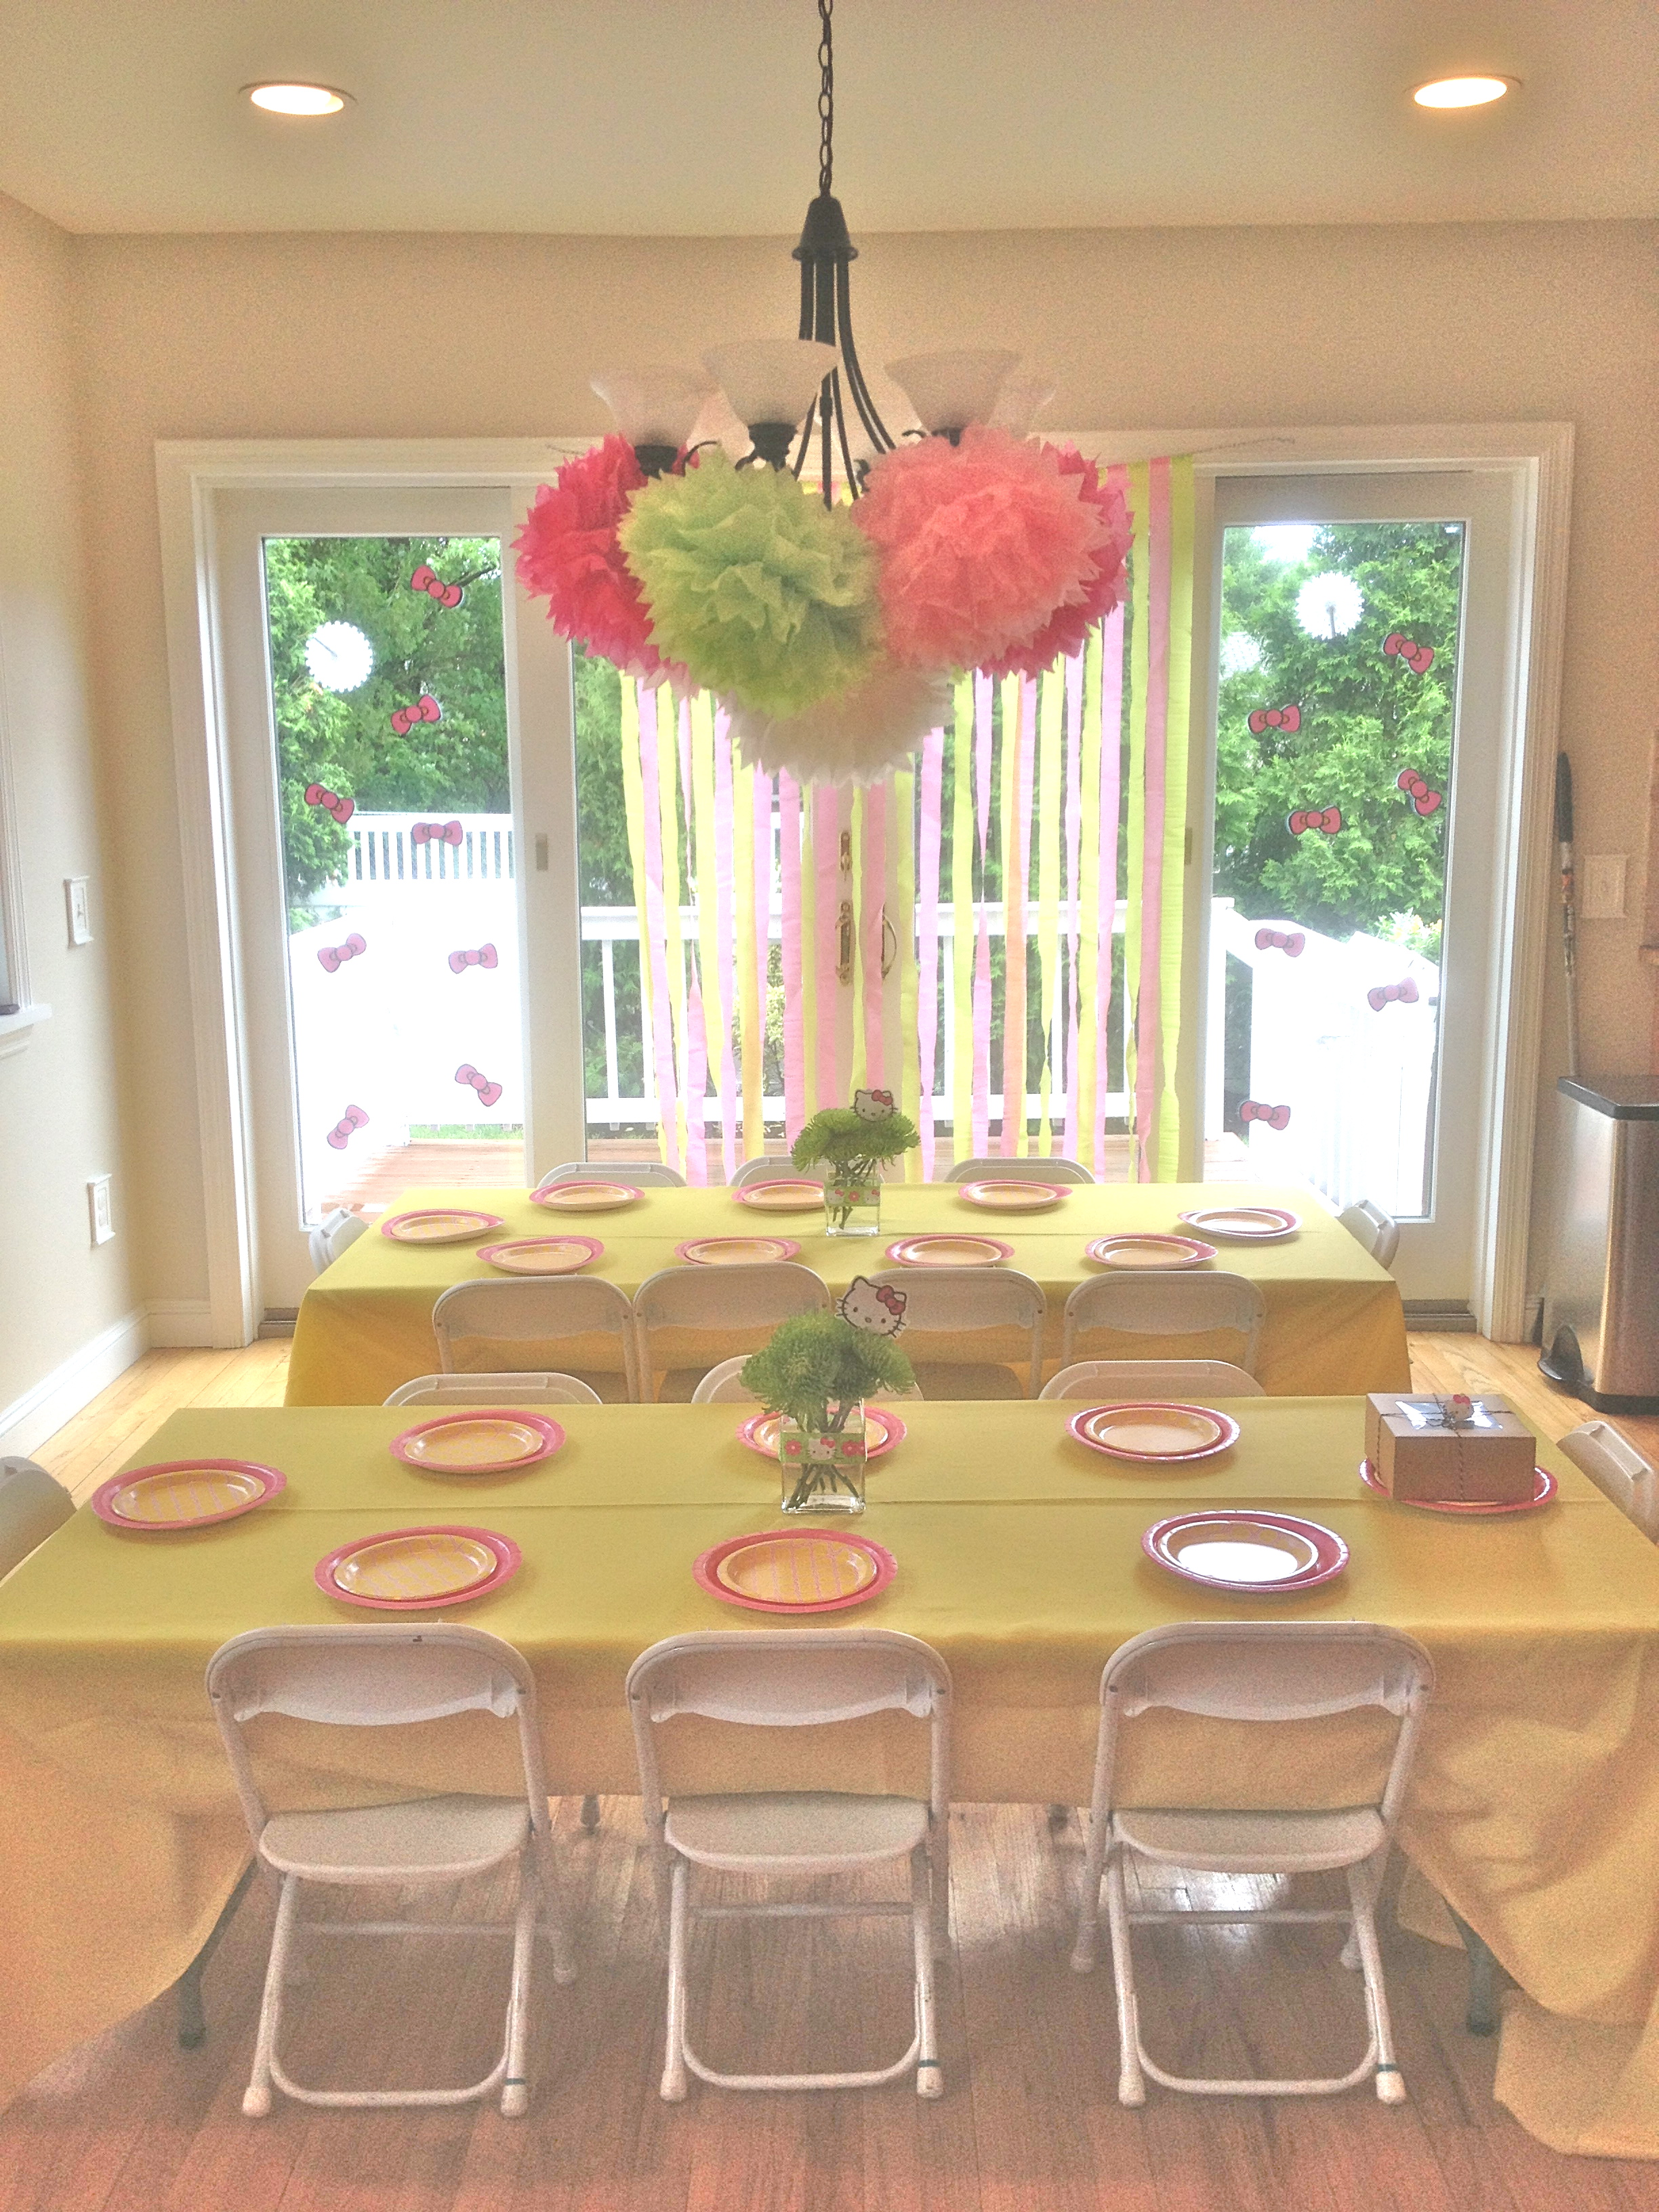 Hello kitty dining room - I Used Fresh Flowers As Centerpieces Tied Hello Kitty Ribbon Around The Vase And Put A Print Out Of Hello Kitty On A Skewer To Bring A Touch Of Hello